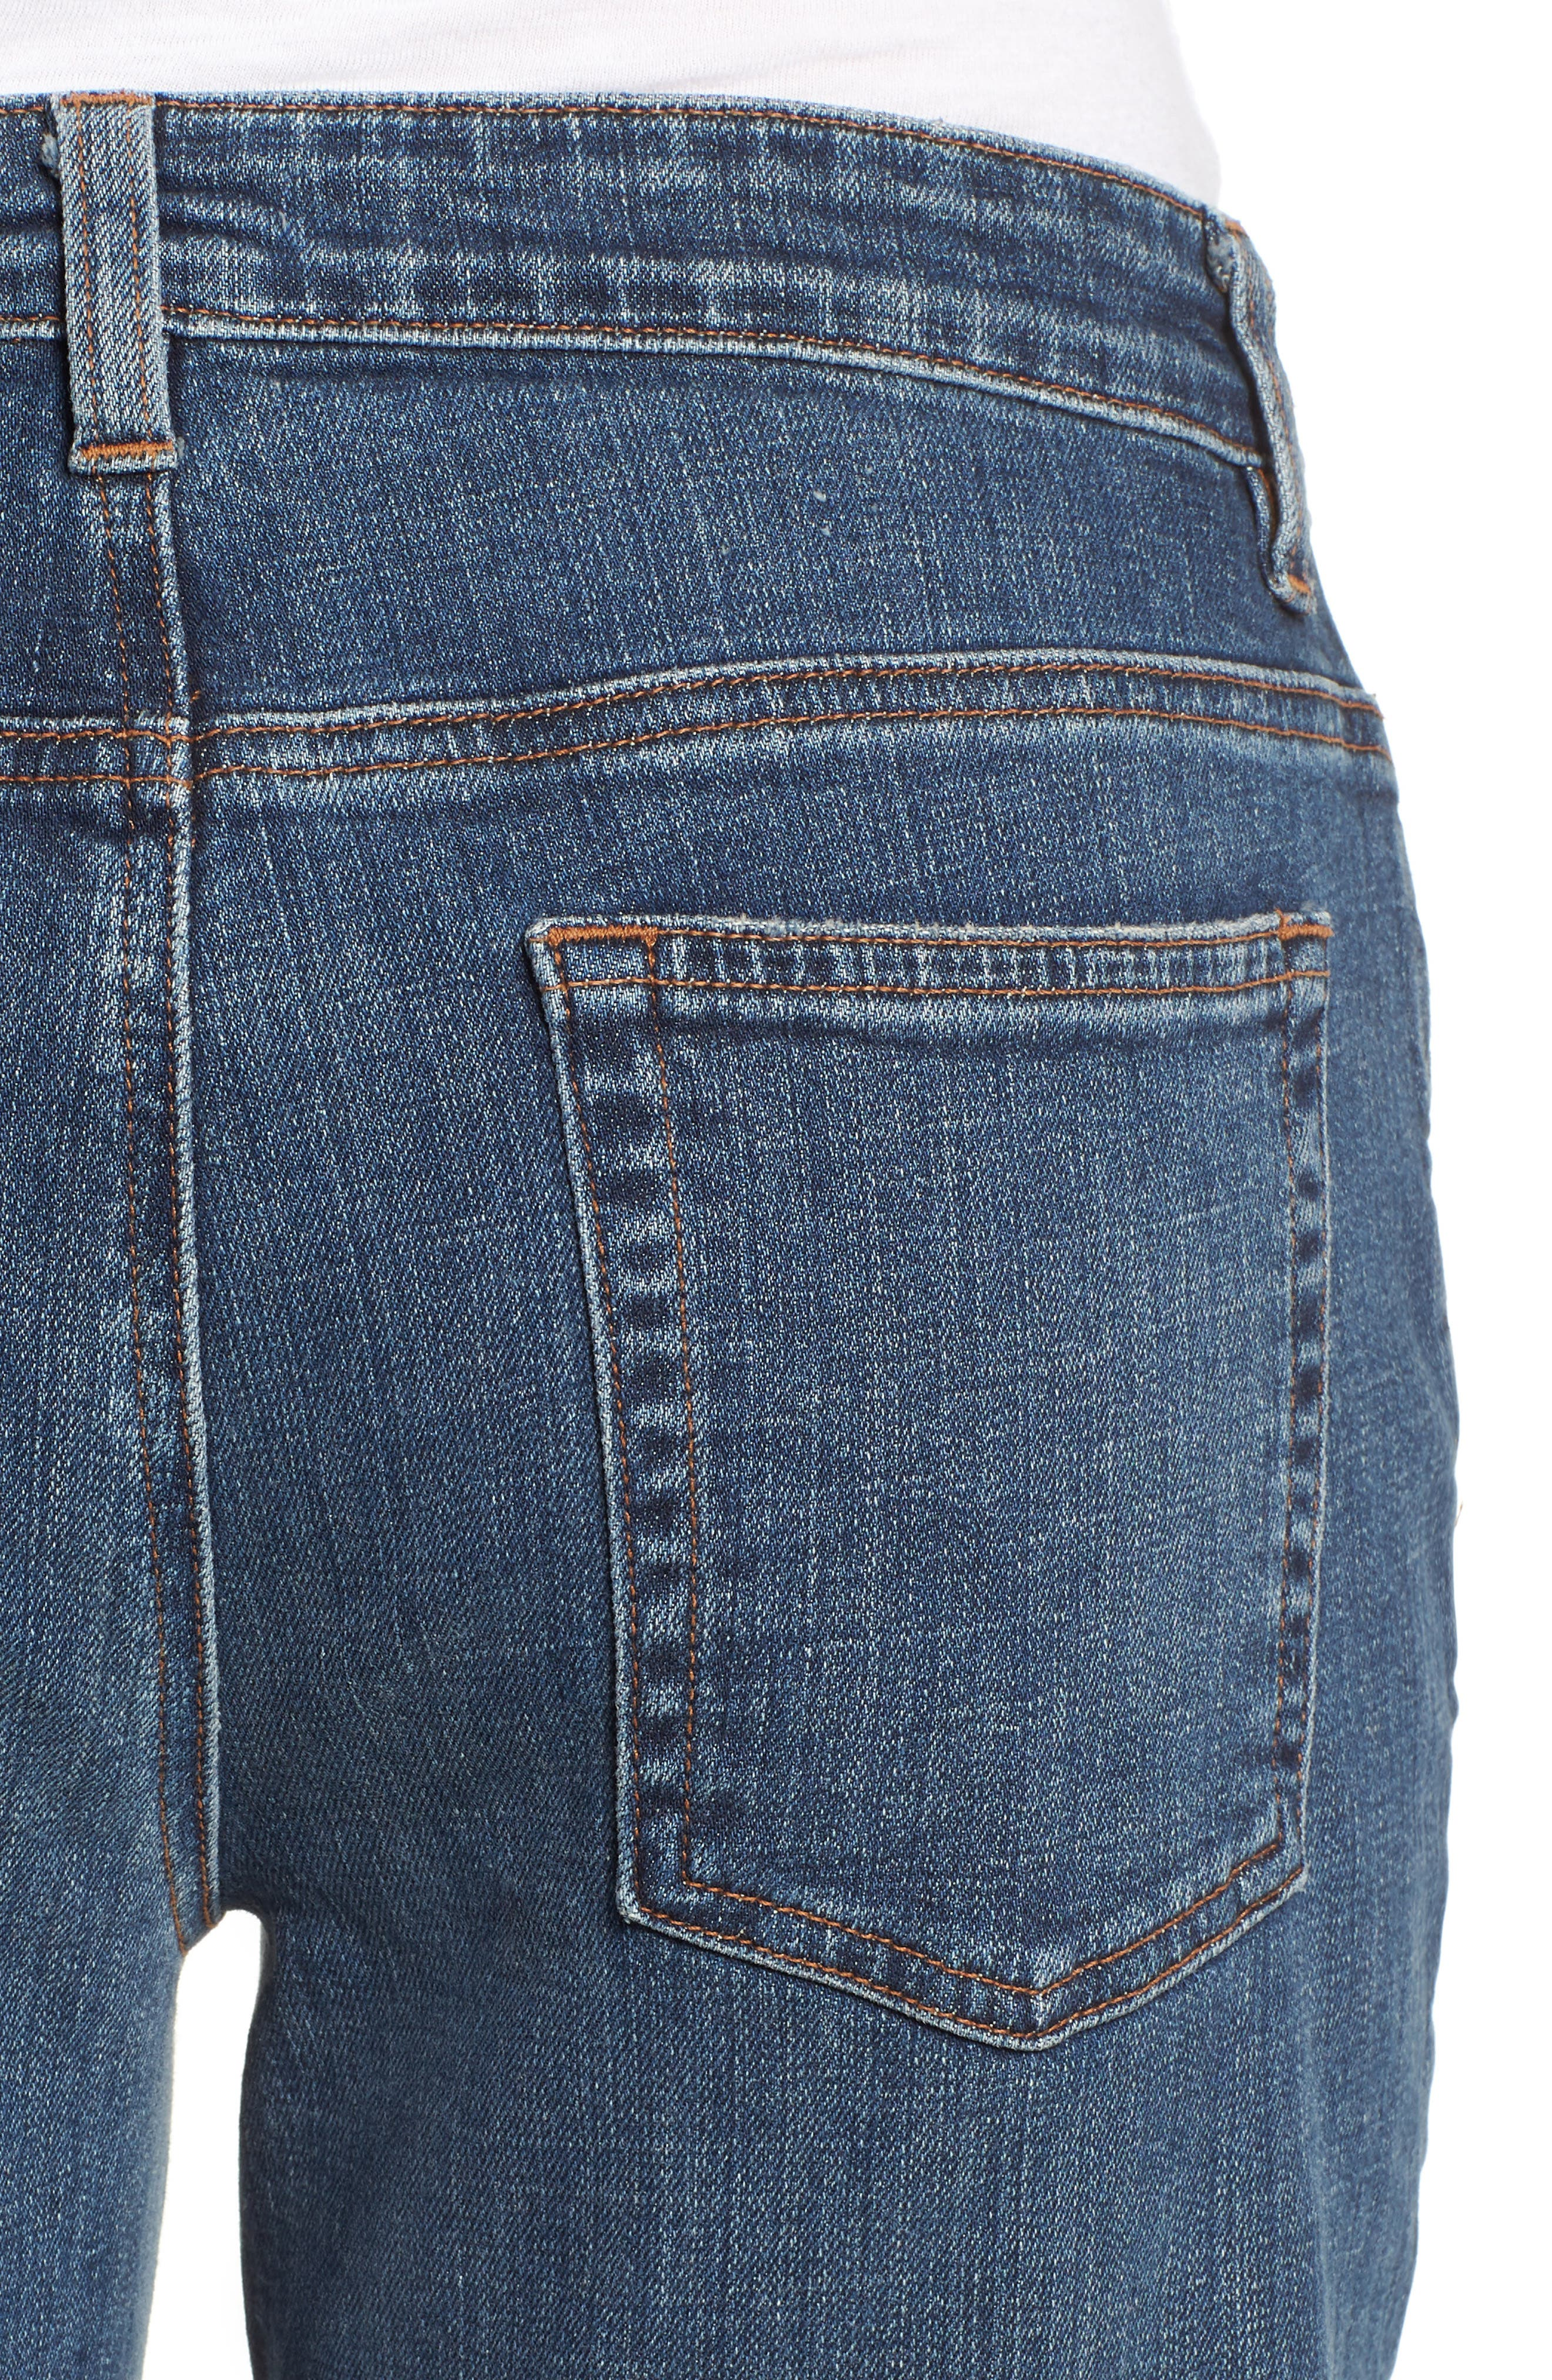 Tapered Stretch Organic Cotton Crop Jeans,                             Alternate thumbnail 4, color,                             Abraded Aged Indigo